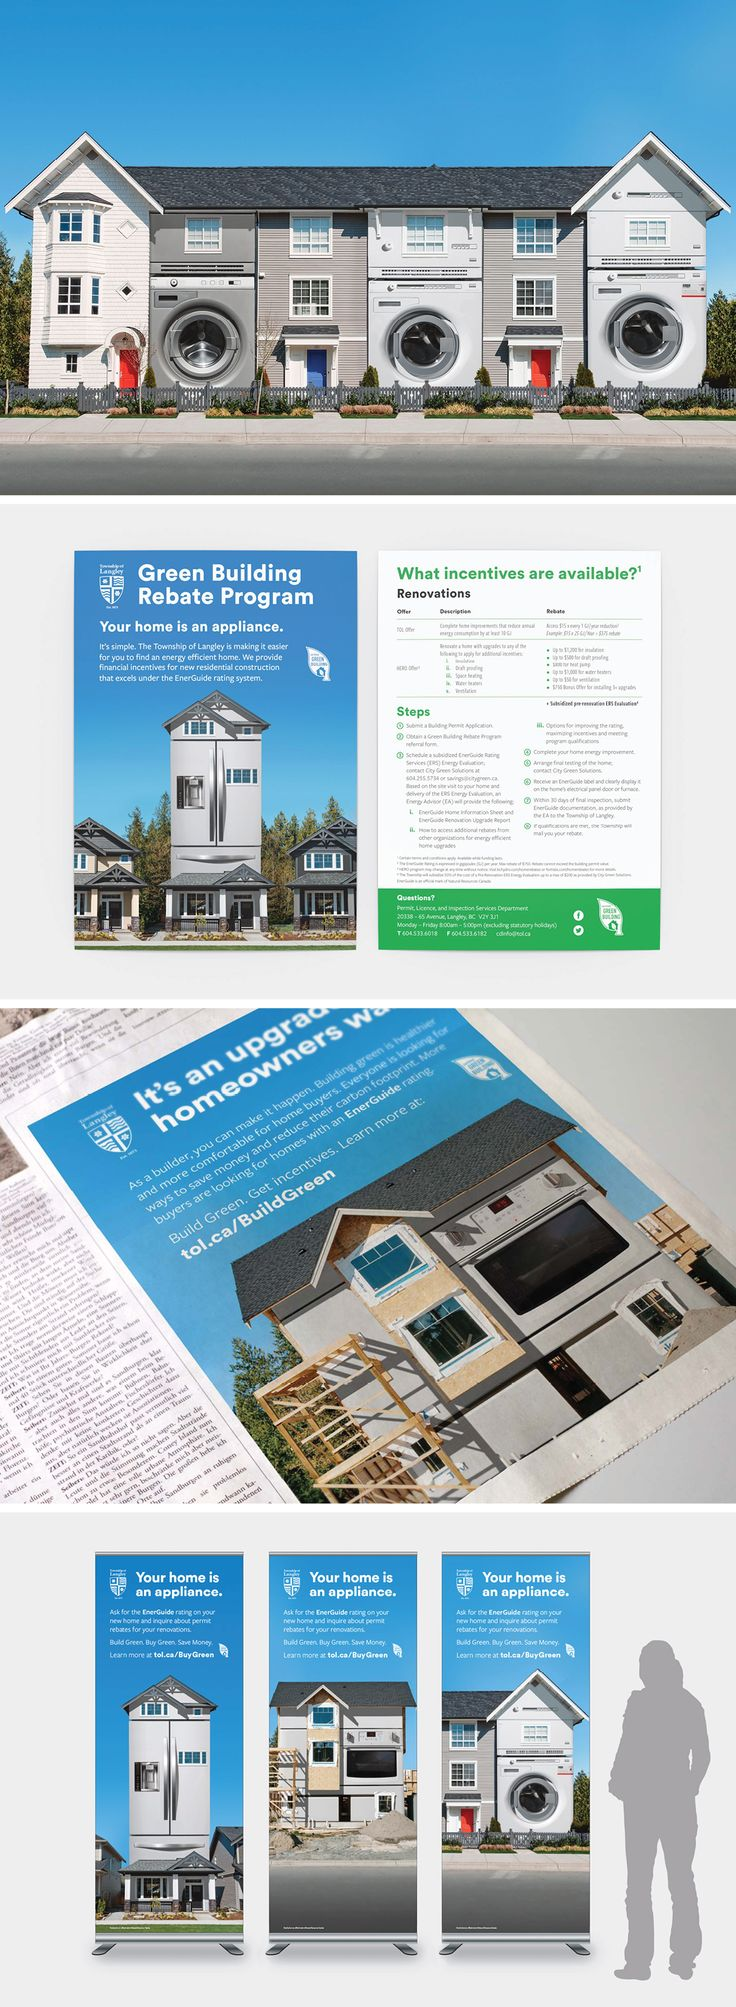 Township of Langley Green Building Rebate Campaign. Making homes energy efficient with green appliances | Ion Brand Design #photoshop #town #city #placebranding